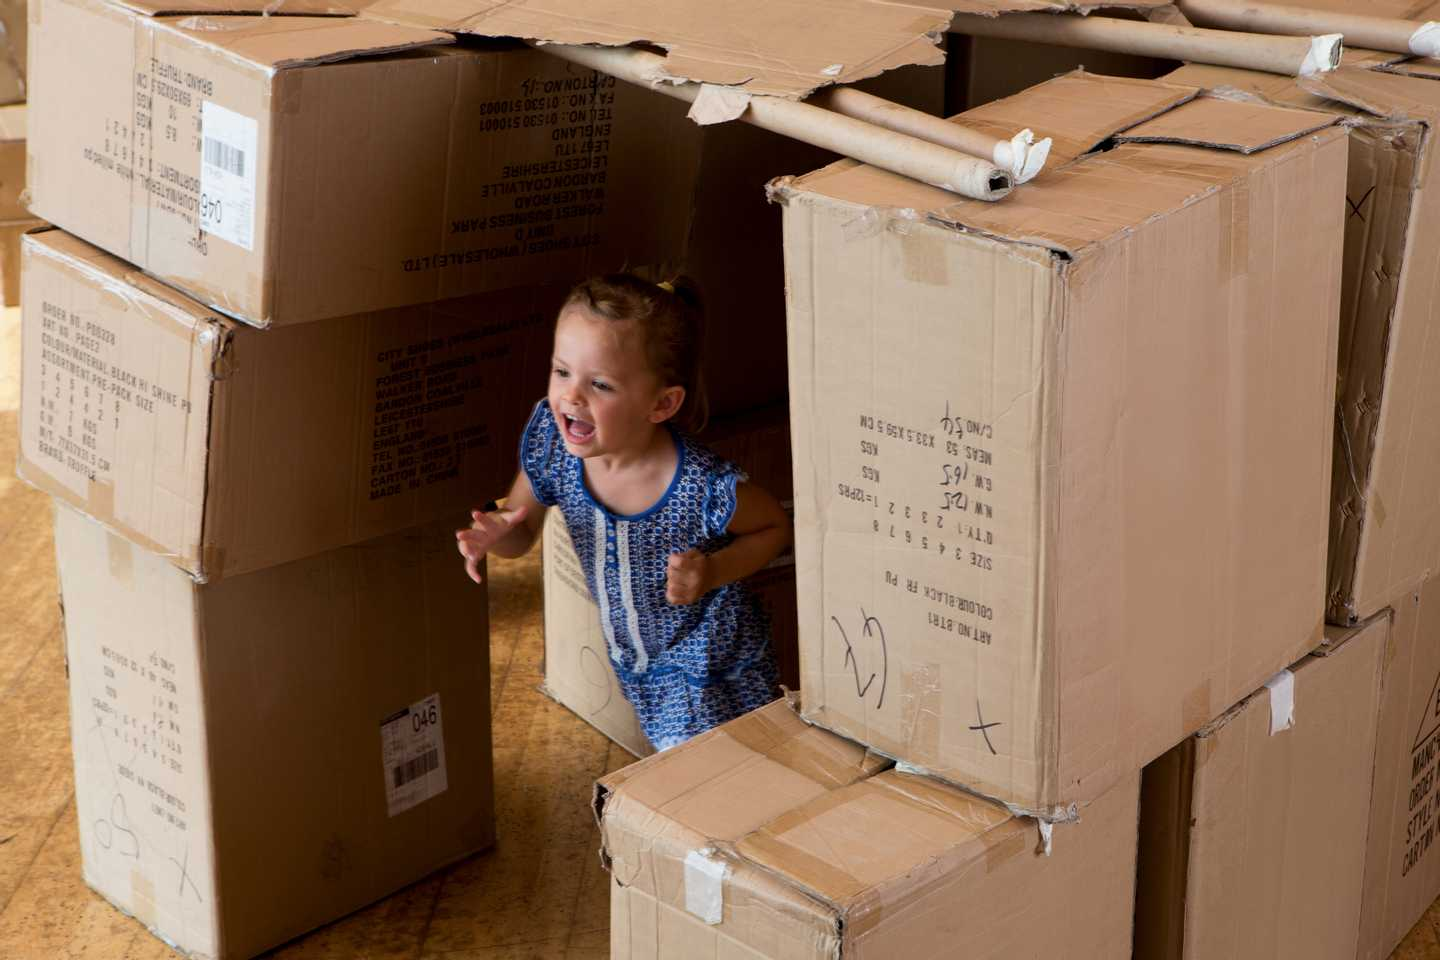 Child peeking out of pile of boxes